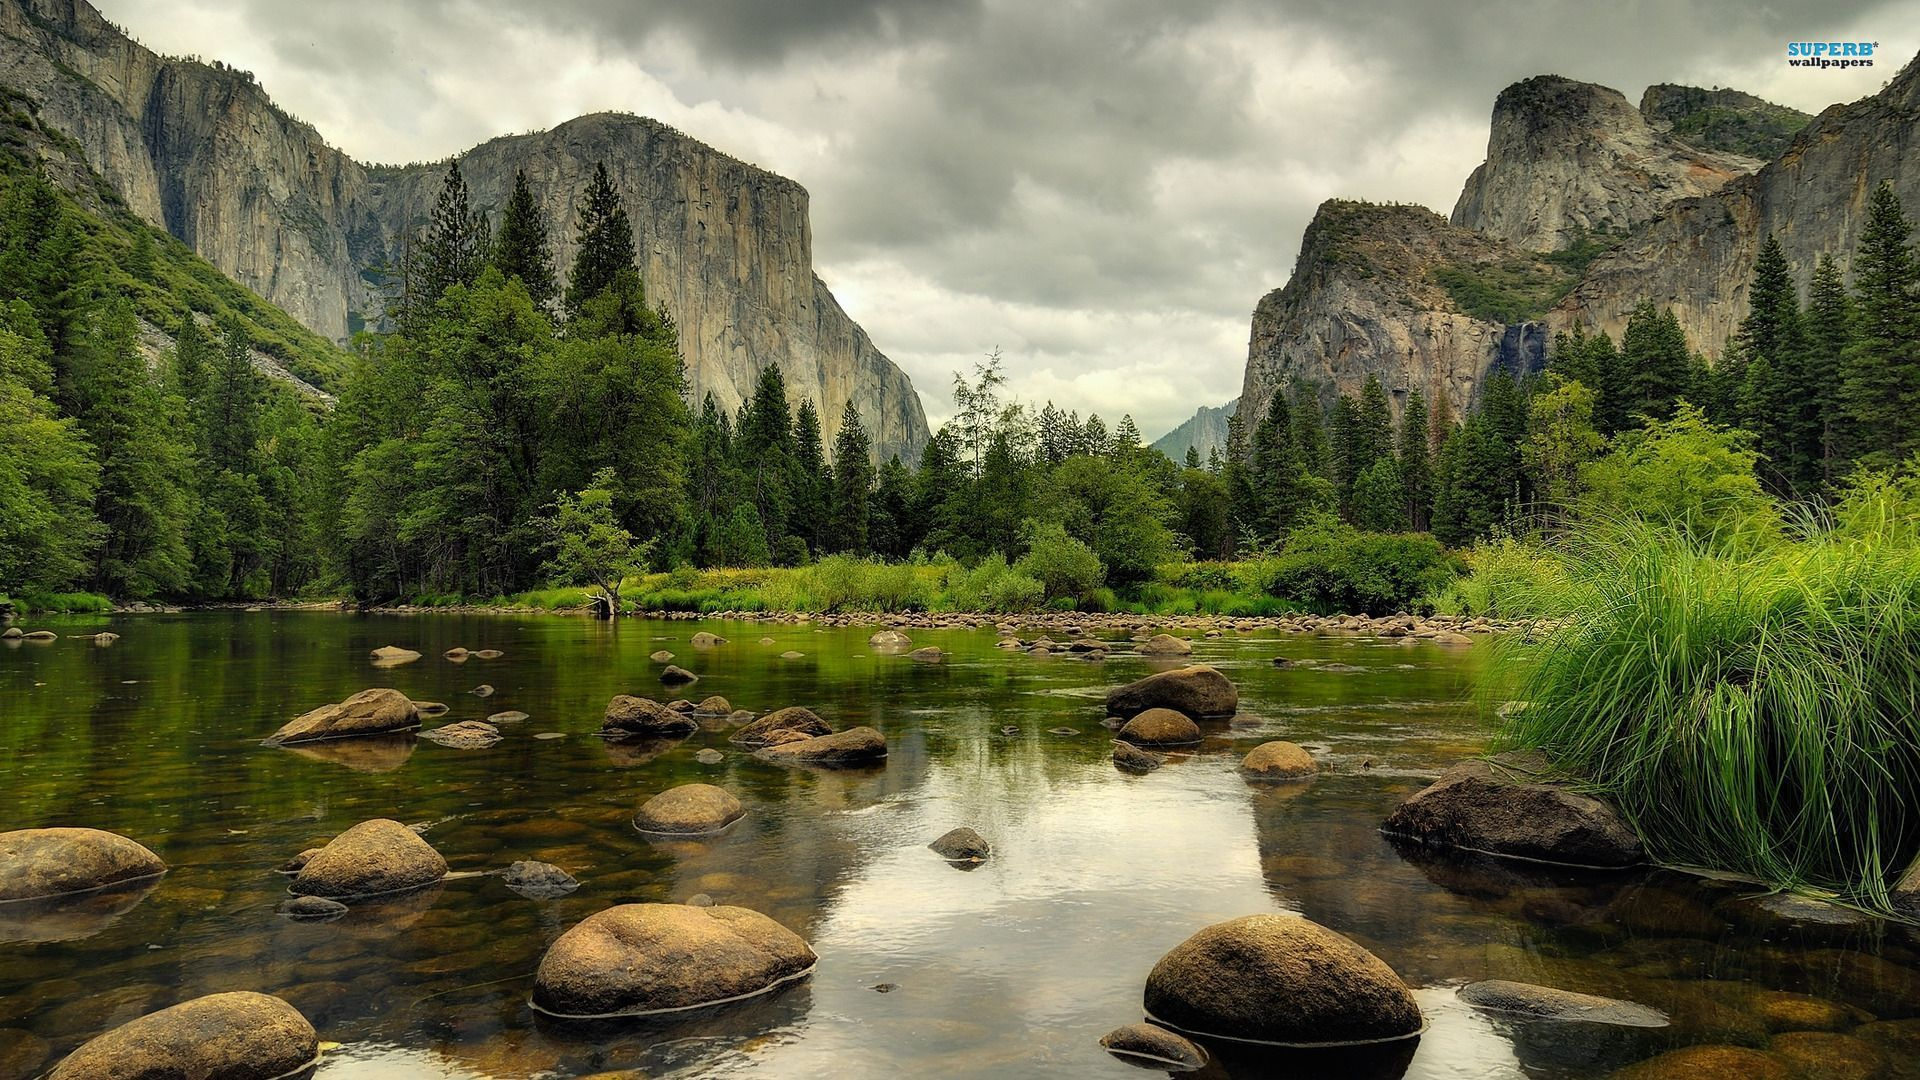 Hd wallpapers page 2509 of 3159 download free desktop - Yosemite national park hd wallpaper ...